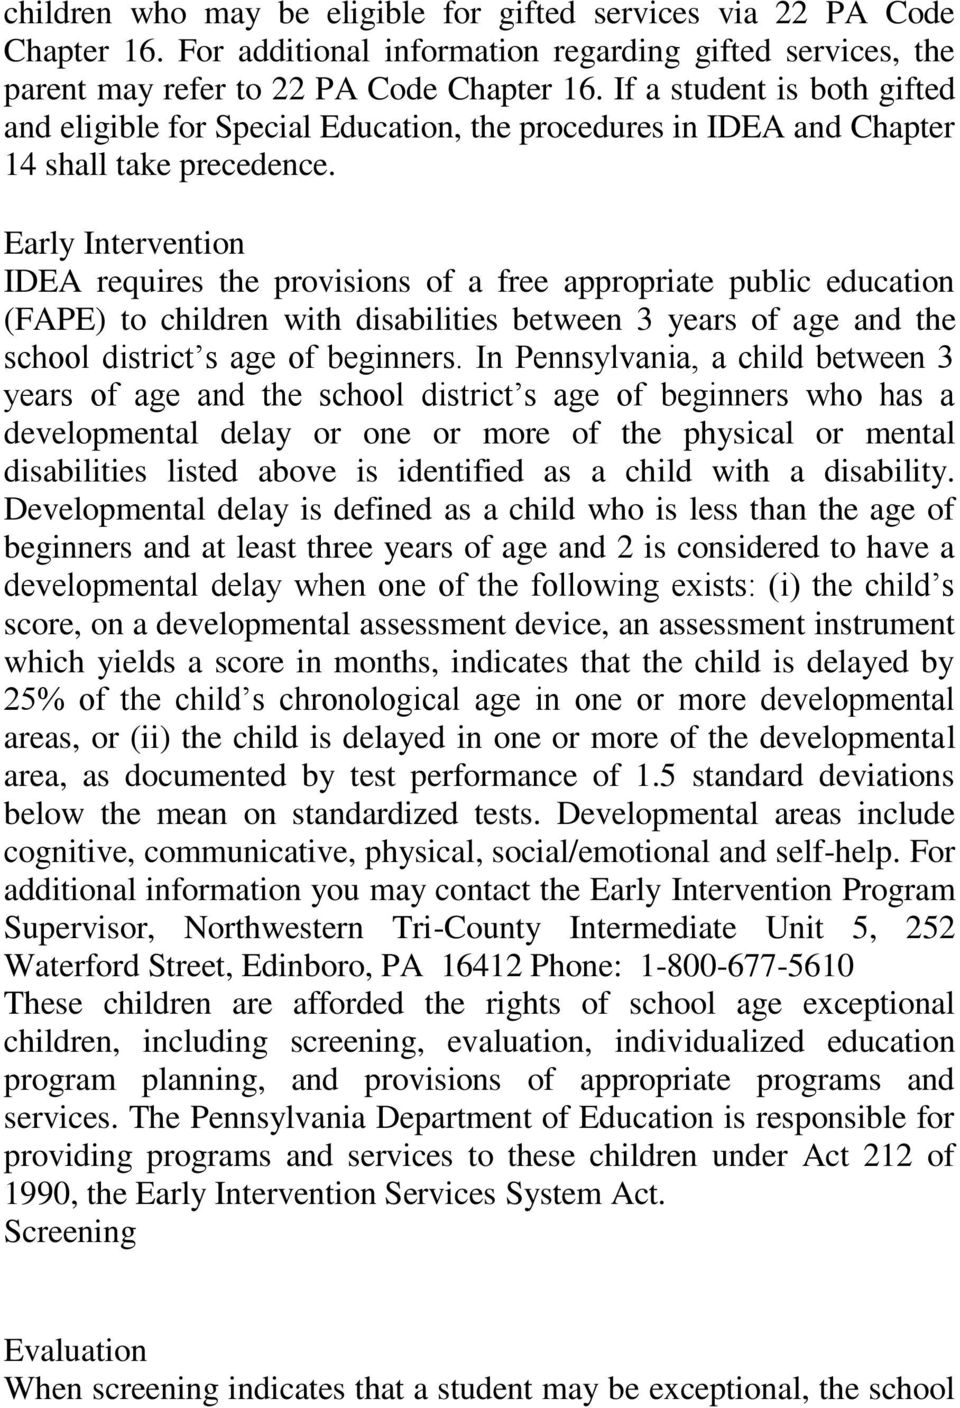 Early Intervention IDEA requires the provisions of a free appropriate public education (FAPE) to children with disabilities between 3 years of age and the school district s age of beginners.